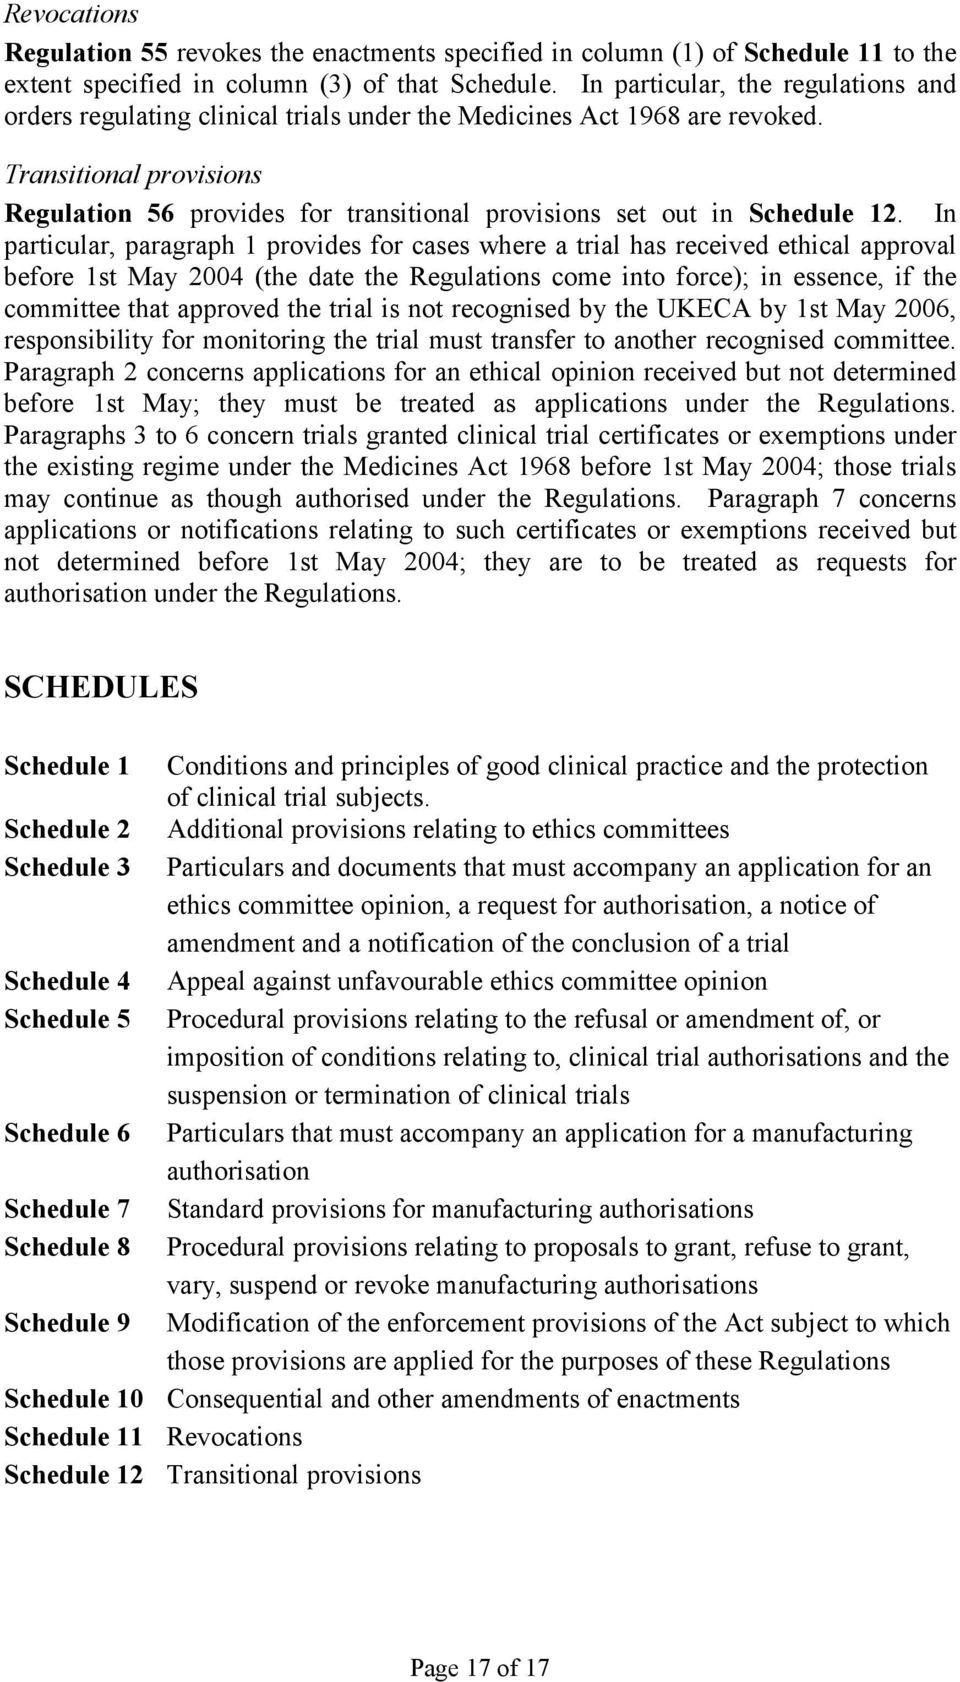 Transitional provisions Regulation 56 provides for transitional provisions set out in Schedule 12.